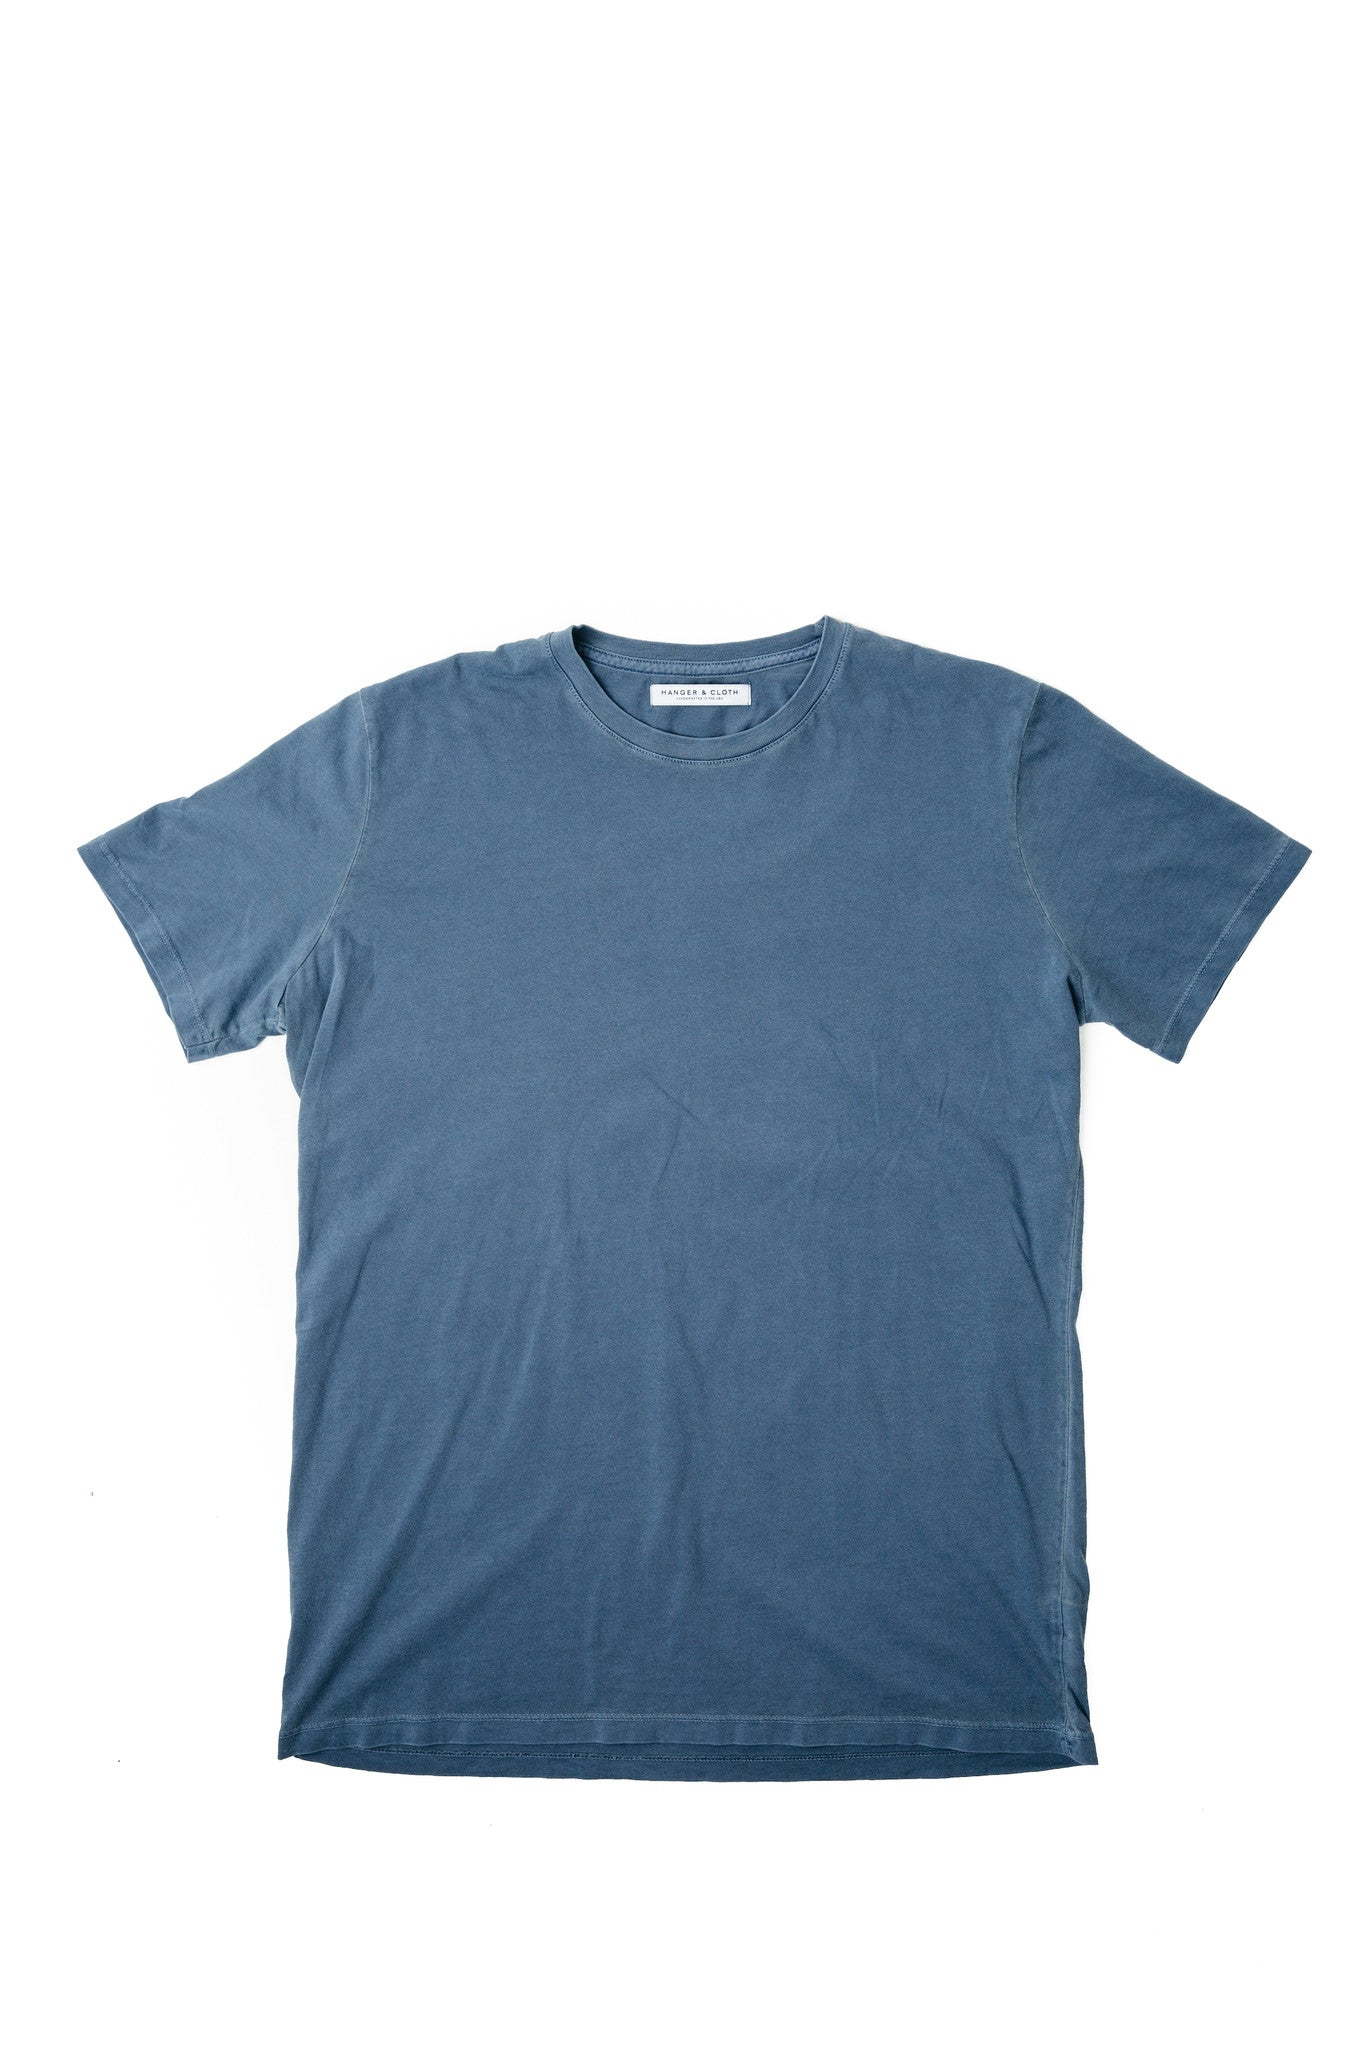 MEN'S CLASSIC CREW TATTERED NAVY